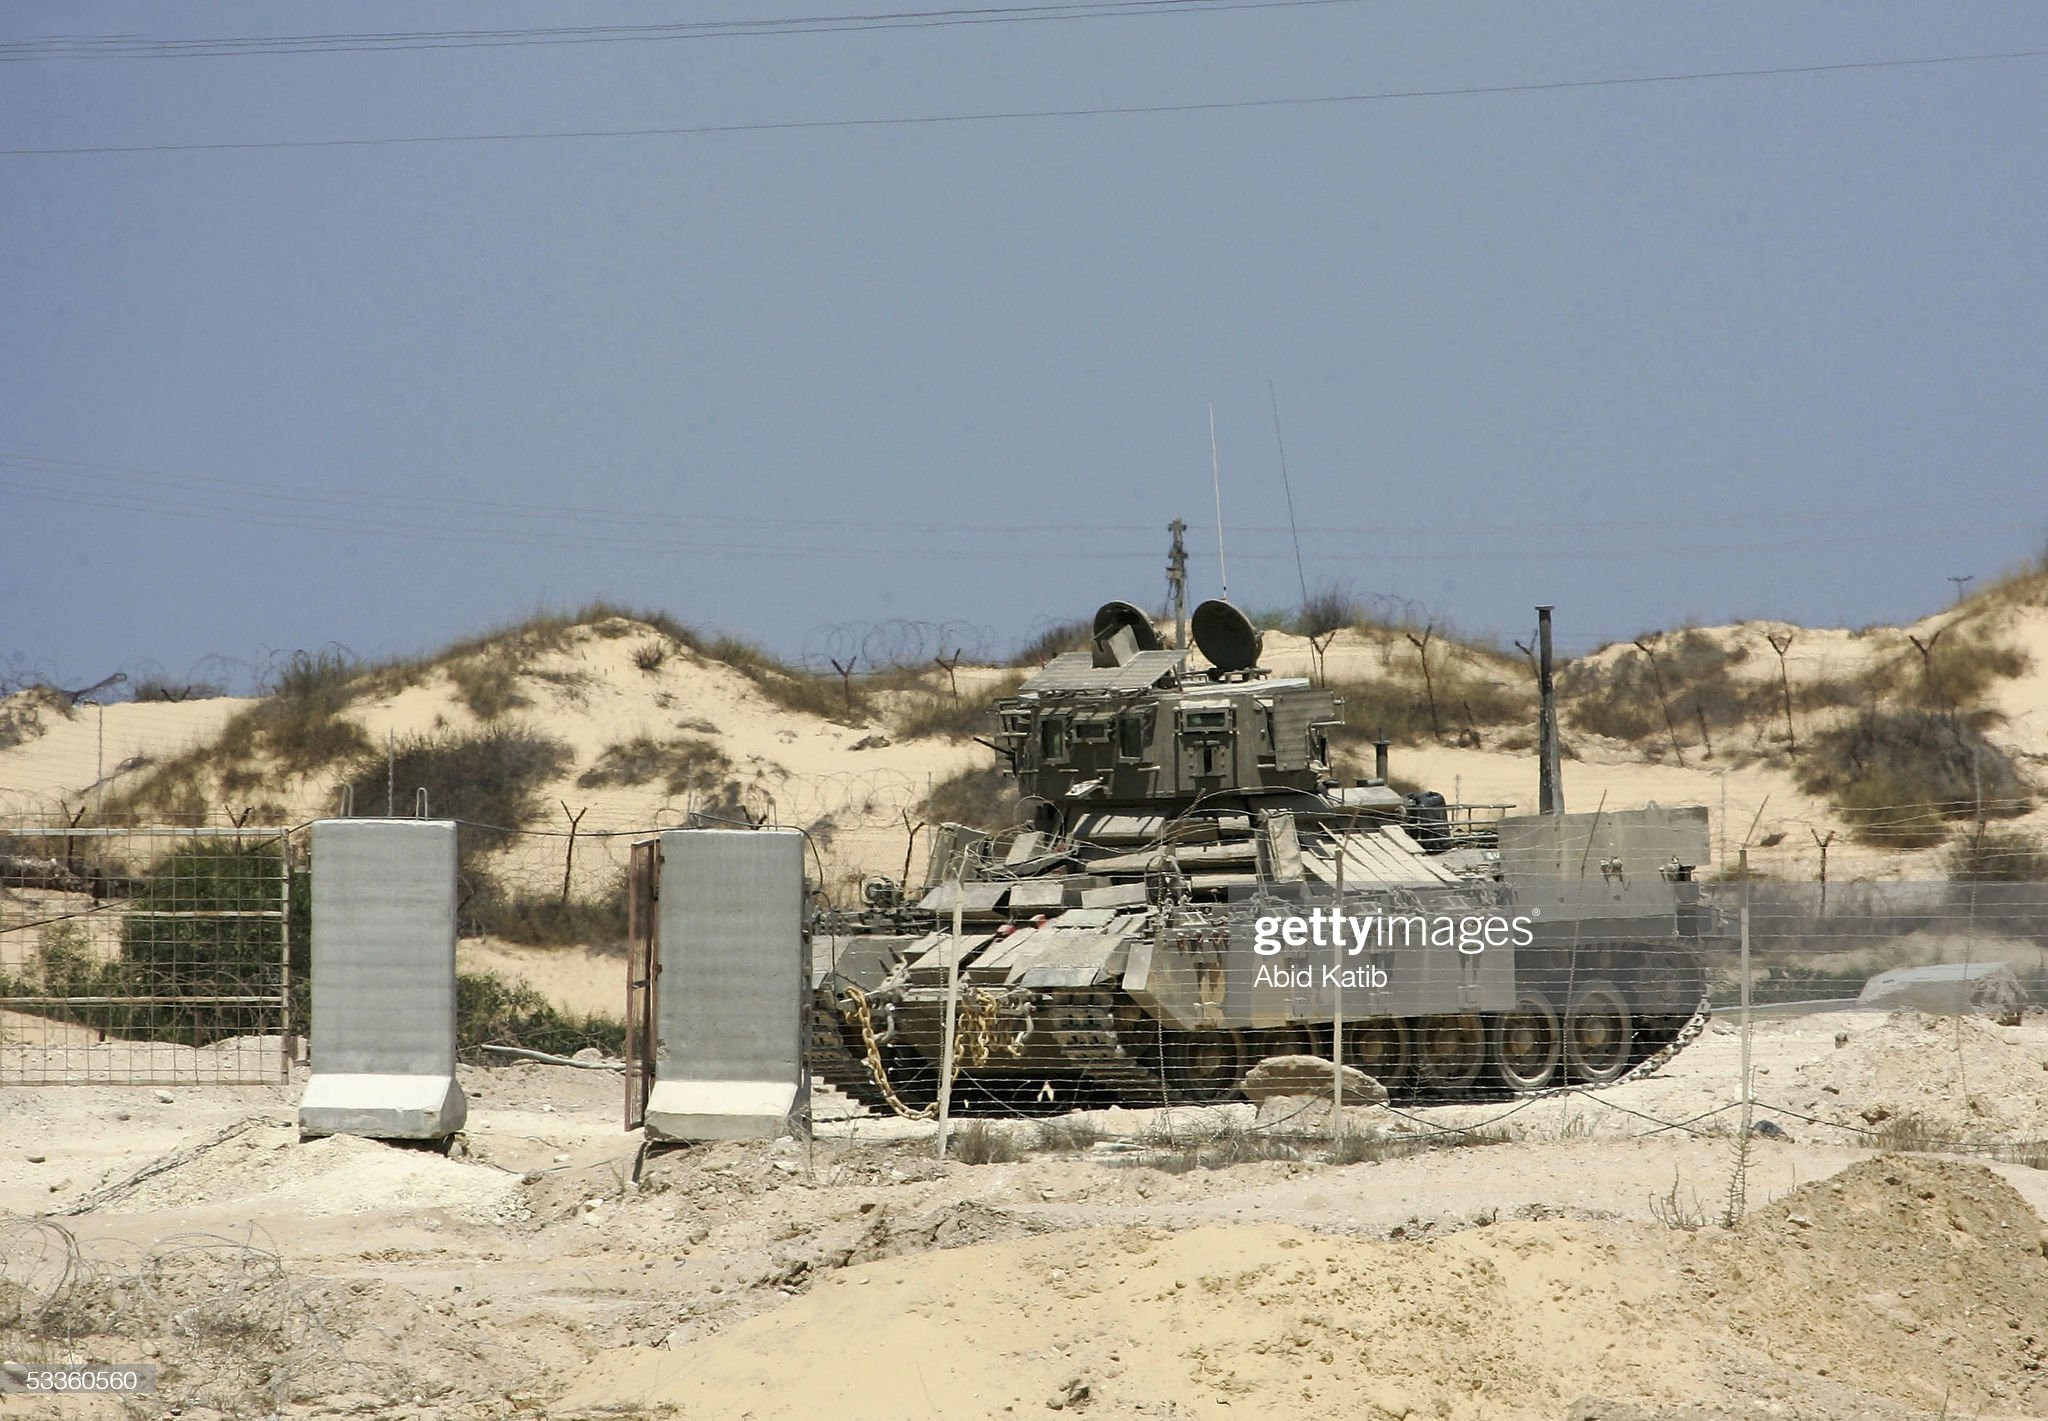 https://media.gettyimages.com/photos/an-israeli-tank-is-pictured-in-front-the-jewish-settlement-of-rafiah-picture-id53360560?s=2048x2048